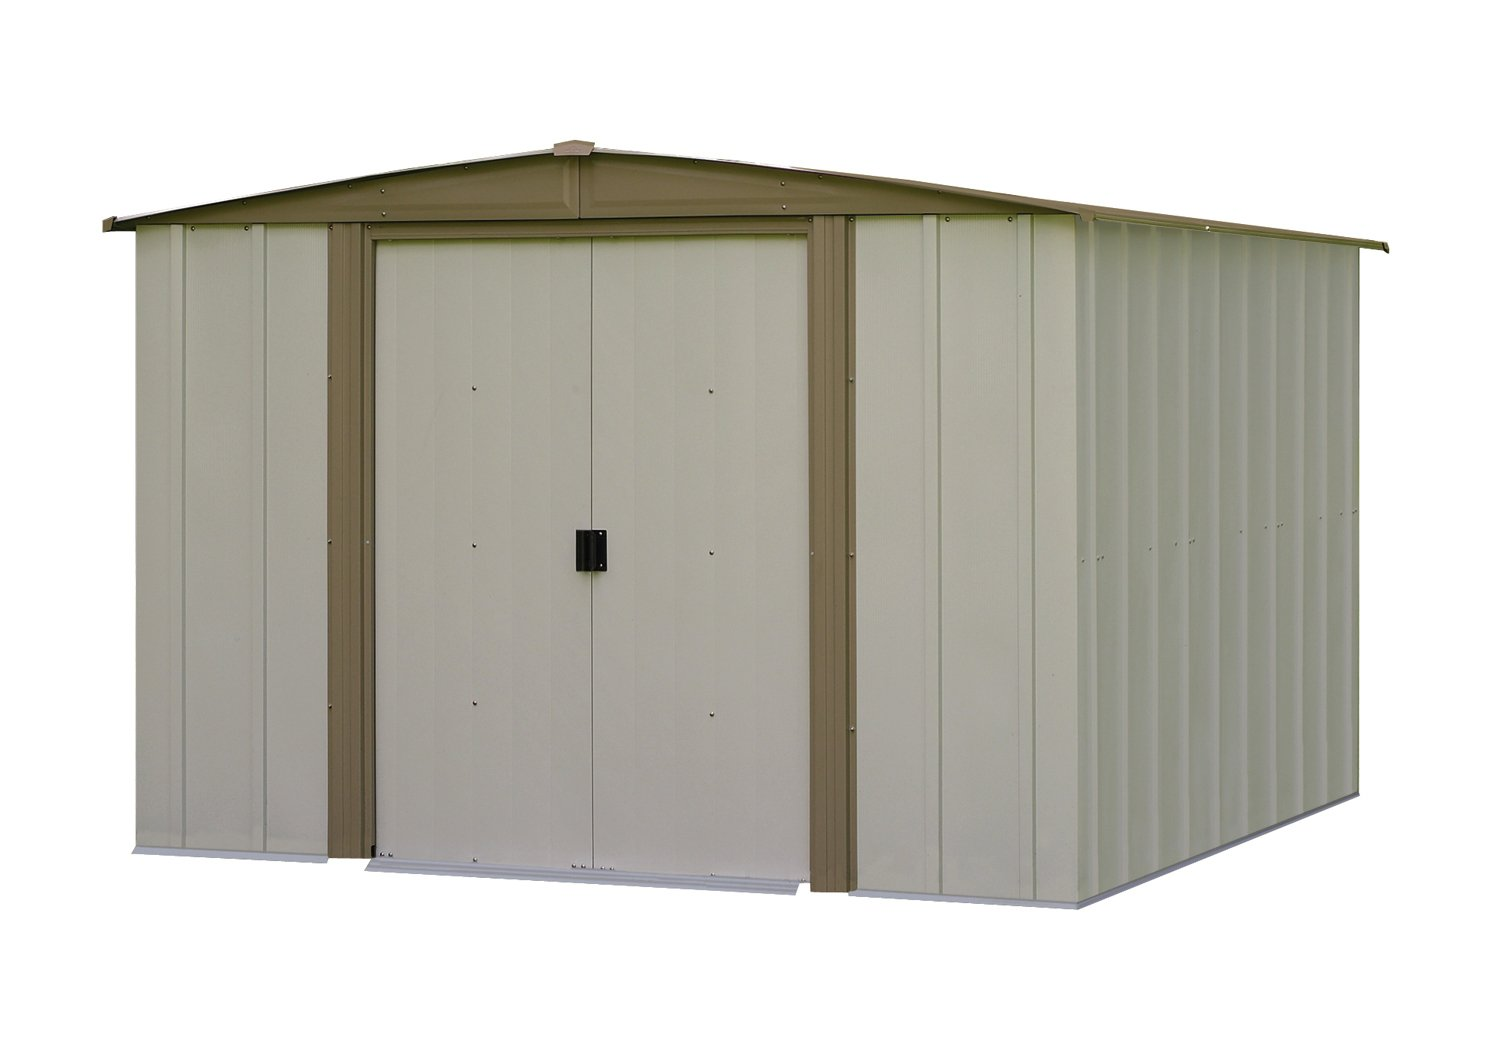 Arrow Bedford BD Steel Storage Shed, 8 by 8-Feet Arrow Shed BD88